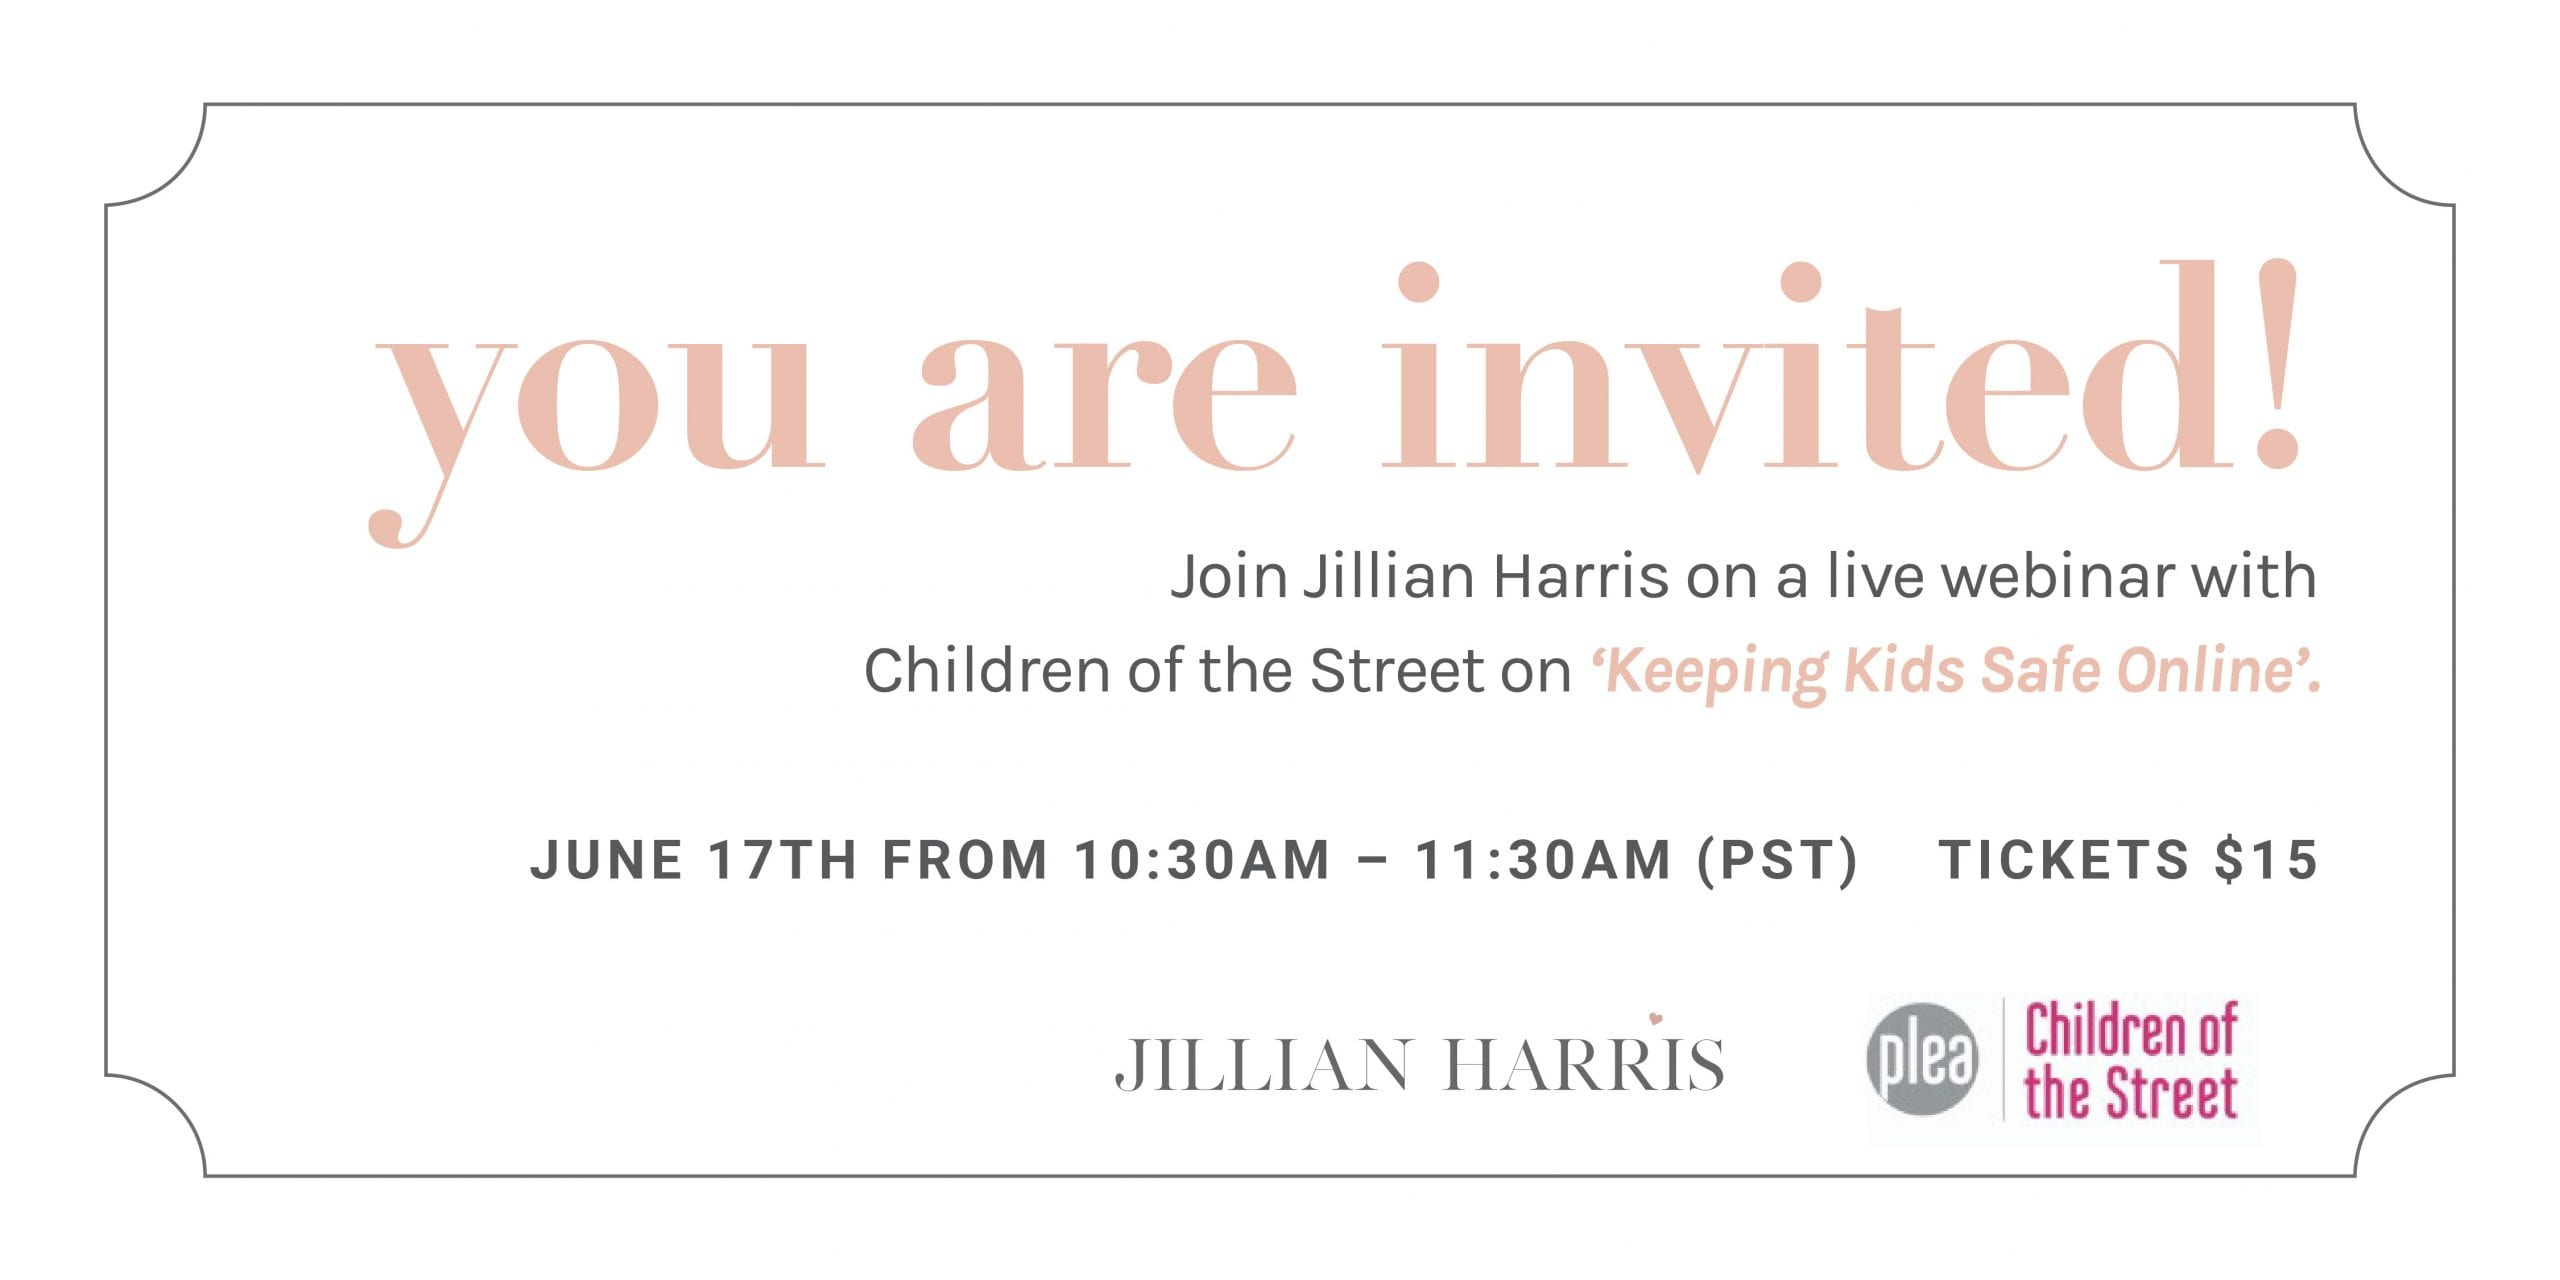 """White image with text saying, """"you are invited! Join Jillian Harris on a live webinar with Children of the Street on 'Keeping Kids Safe Online'. June 17th from 10:30AM - 11:30AM PST. Tickets $15"""